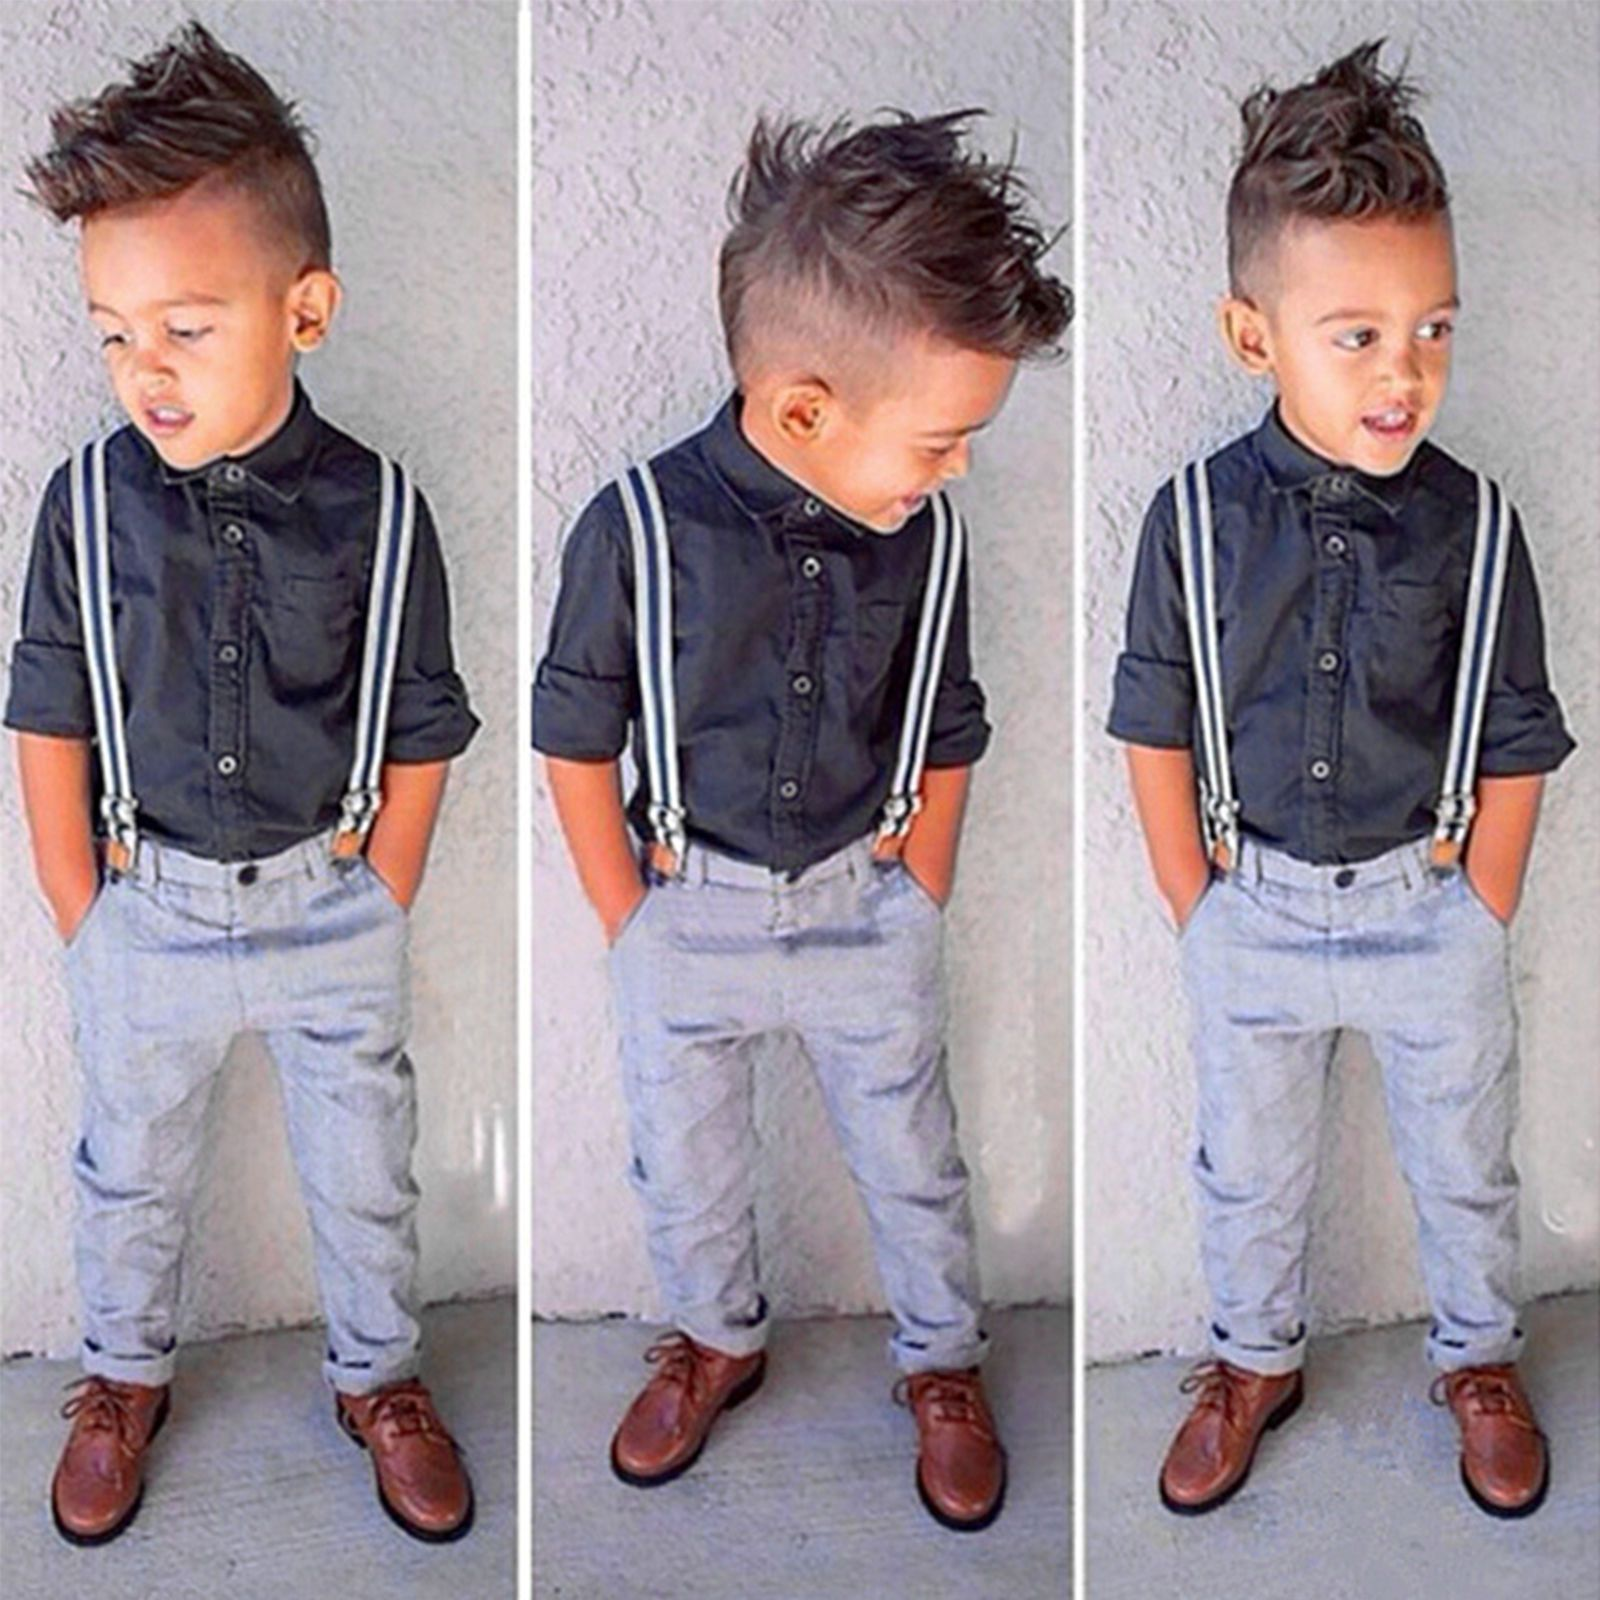 Long Pant Gentleman Suit Kids Clothes Outfits Set Toddler Baby Boys Formal Top